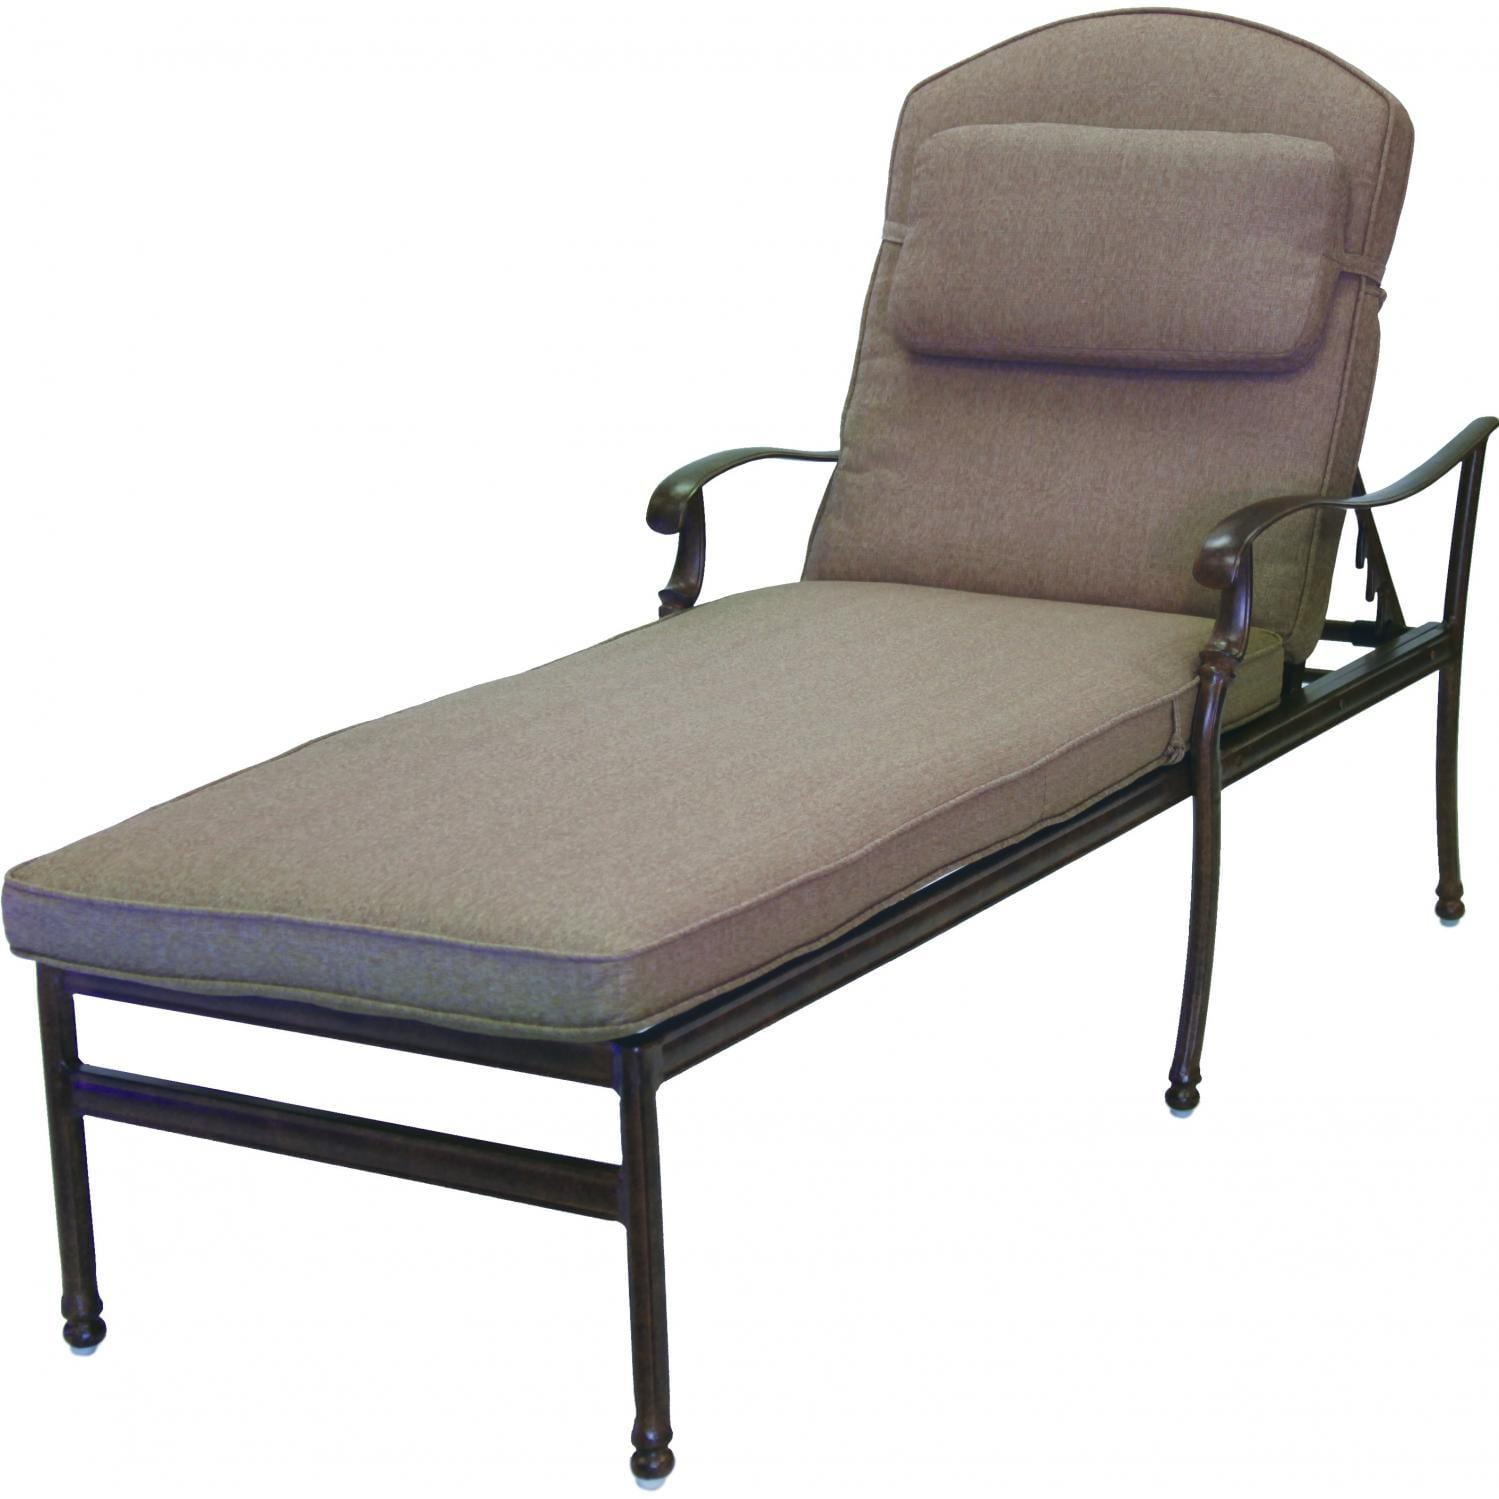 Darlee Florence 3 Piece Patio Chaise Lounge Set The